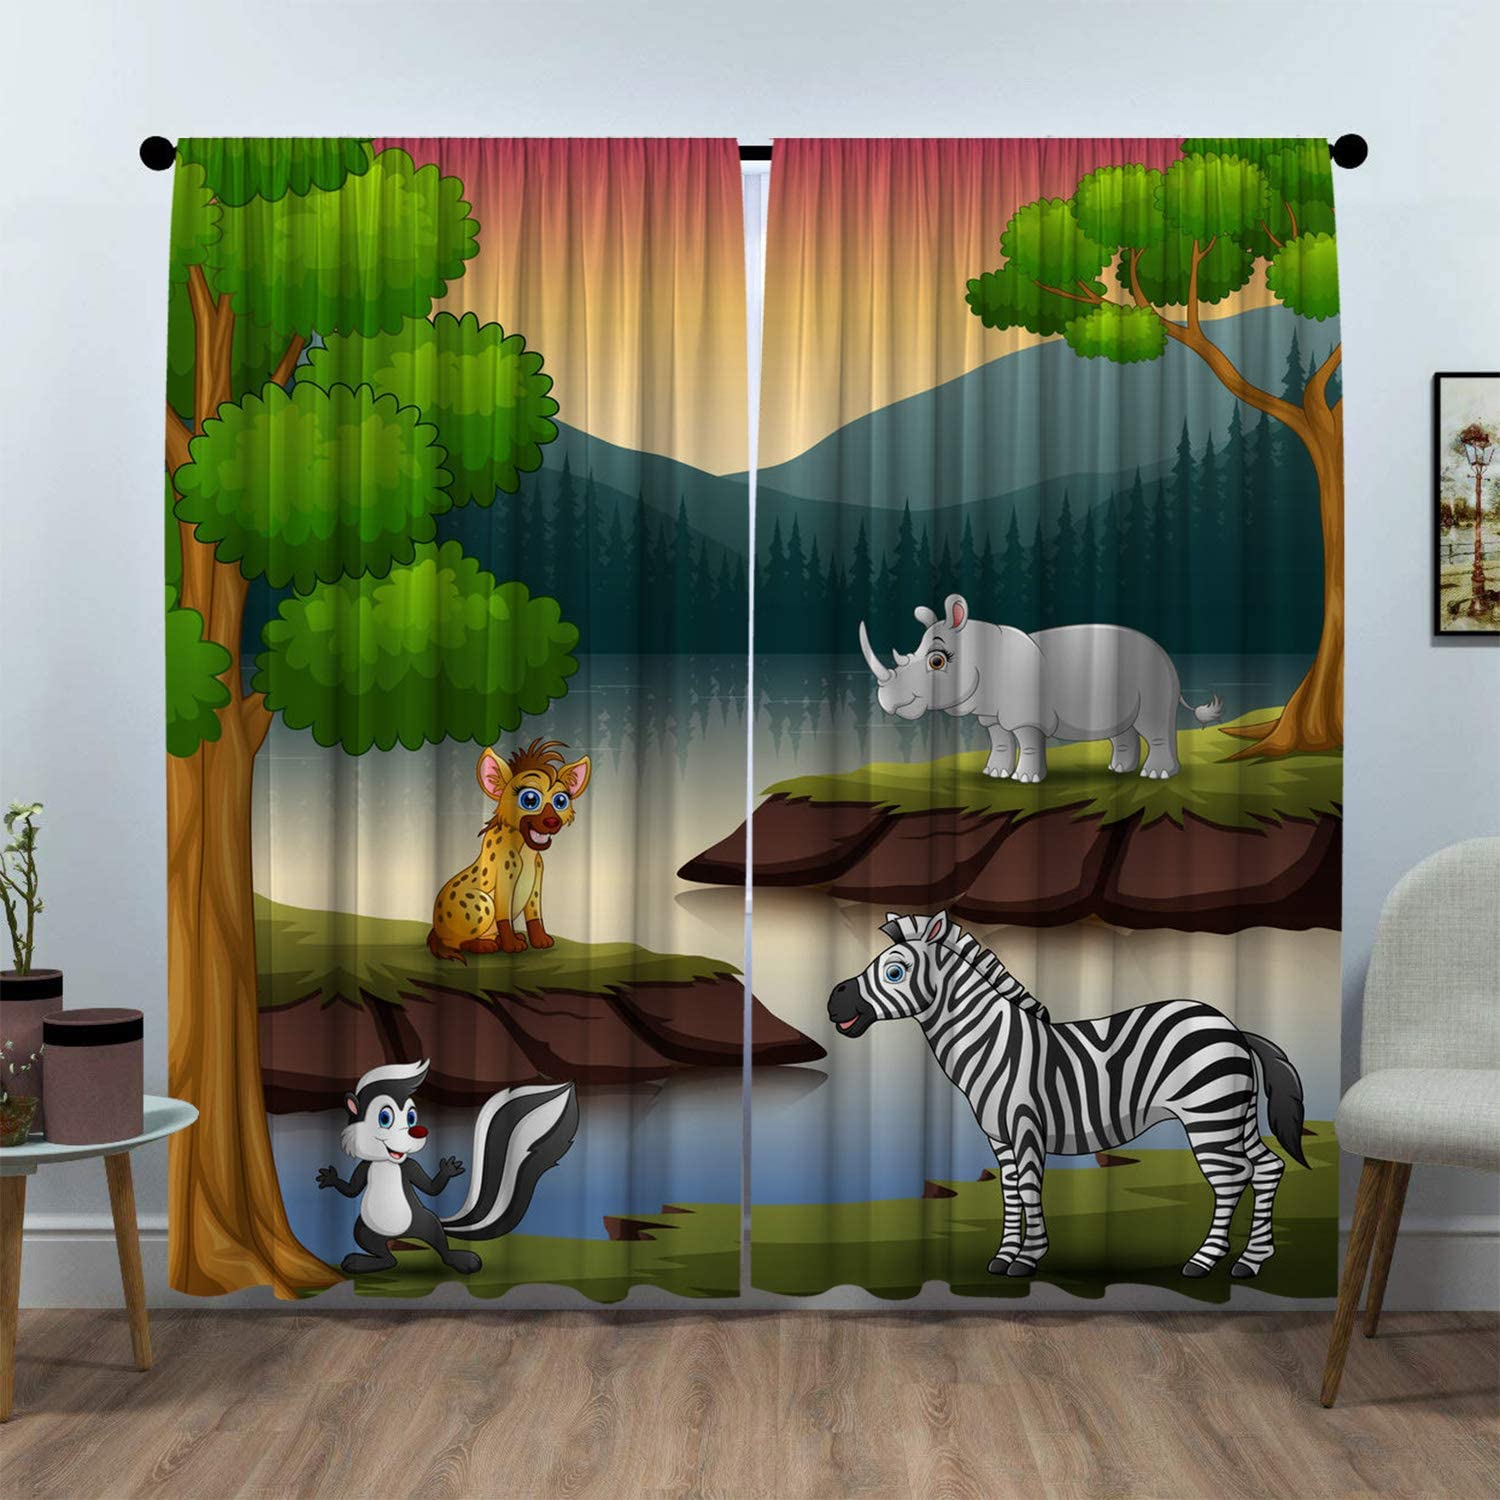 SeptSonne Kids Room Window Curtain Panels Drapes Vector of Wild Animals Enjoy Nature in The Lake Kids Curtains Blackout Artwork Customized Curtains W63 xL63